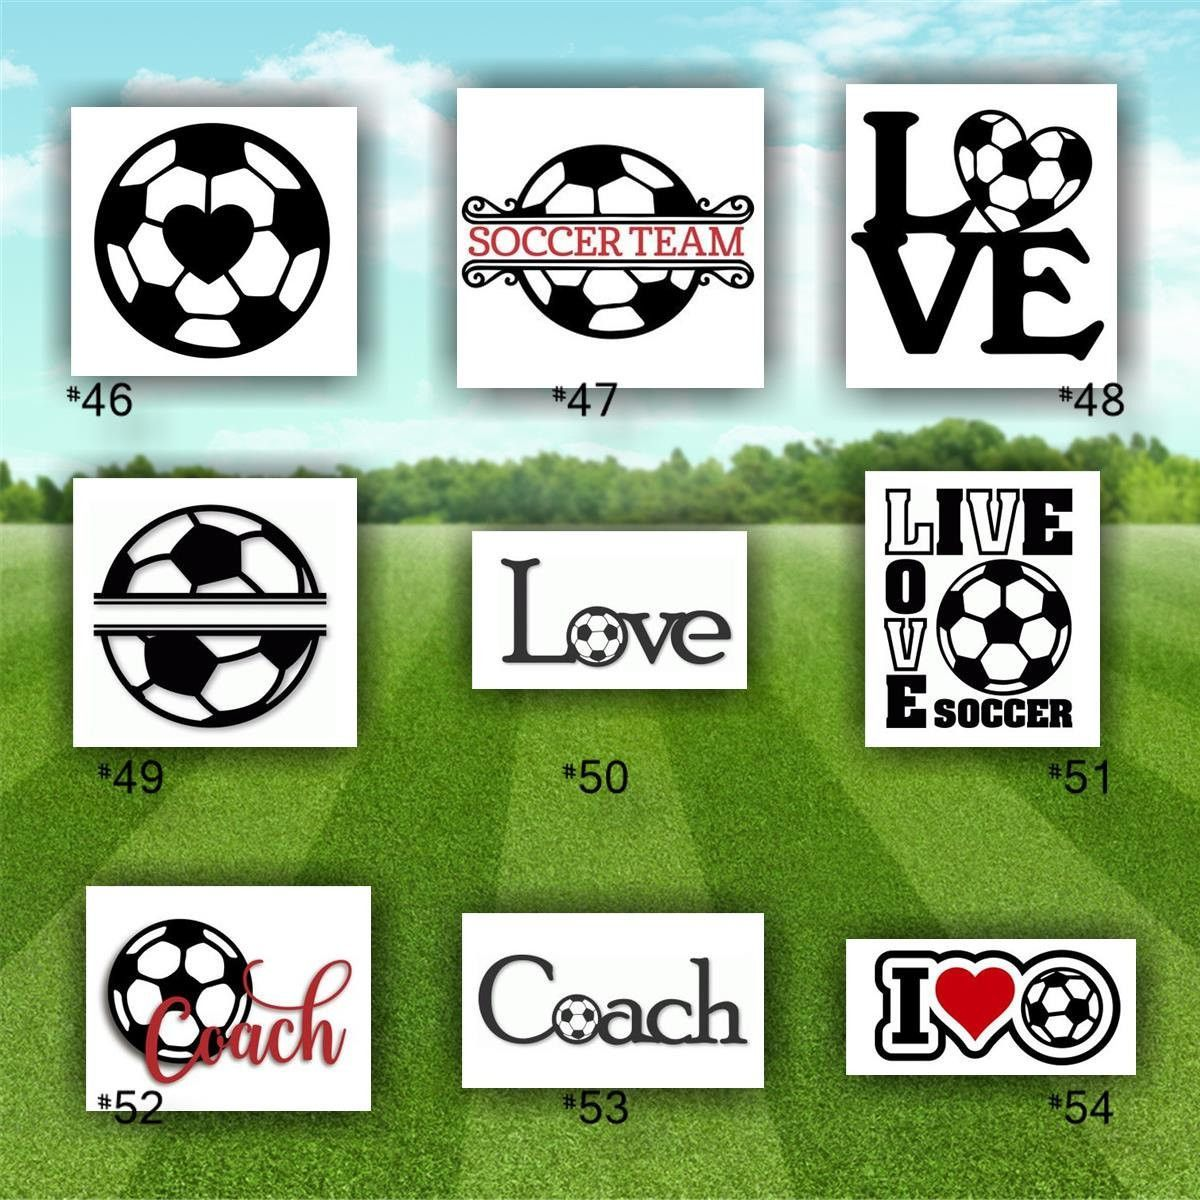 SOCCER Vinyl Decals  Custom Car Window Stickers Car - Soccer custom vinyl decals for car windows